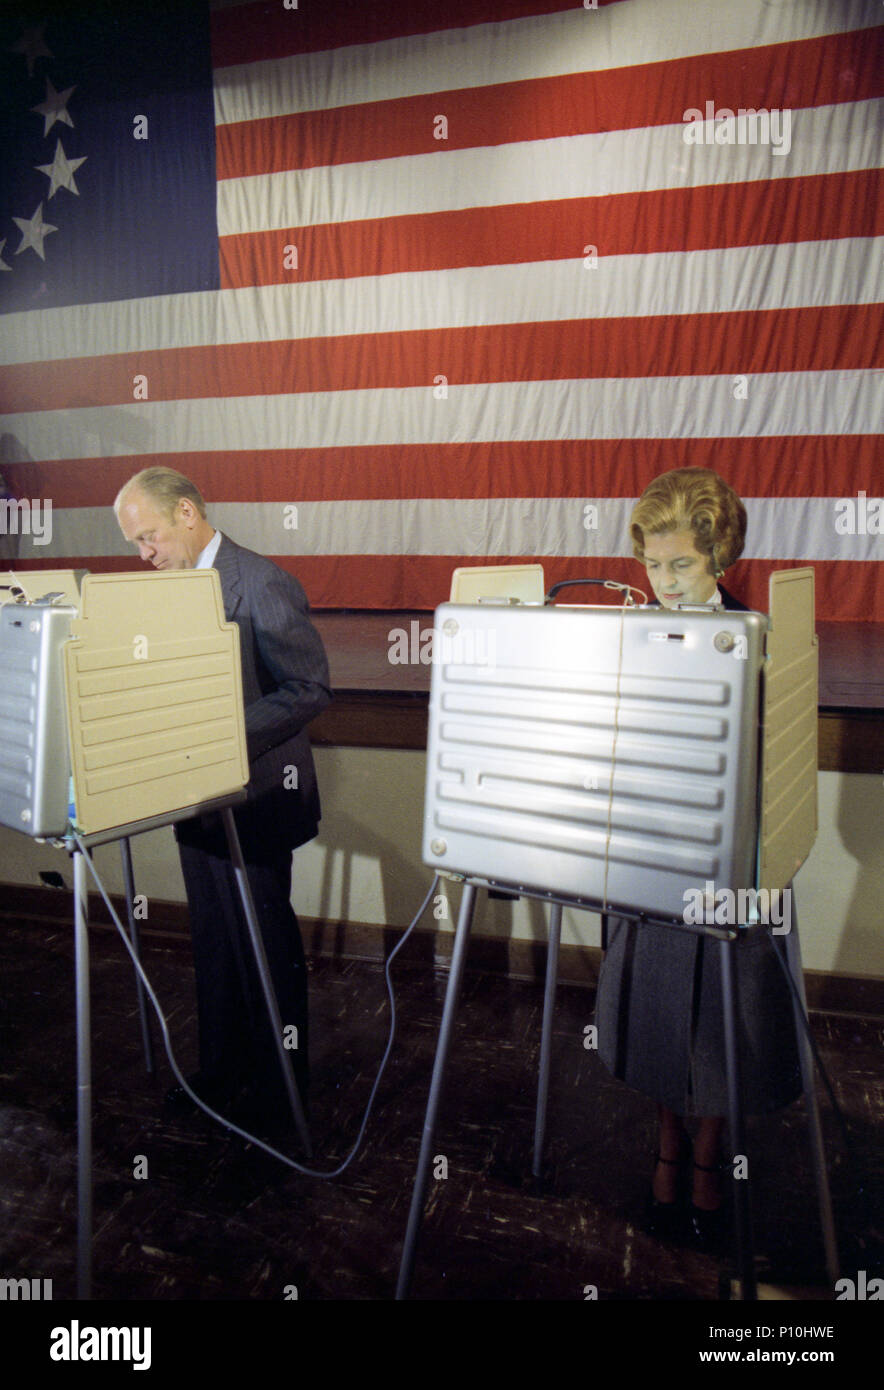 1976, November 2 - Wealthy Elementary School - Auditorium - East Grand Rapids, MI - Gerald R. Ford, Betty Ford - standing in voting booths; voting; partially obscured by walls of voting machine; medium range - Campaign Trip to Michigan - Voting in Presidential Election - Stock Image